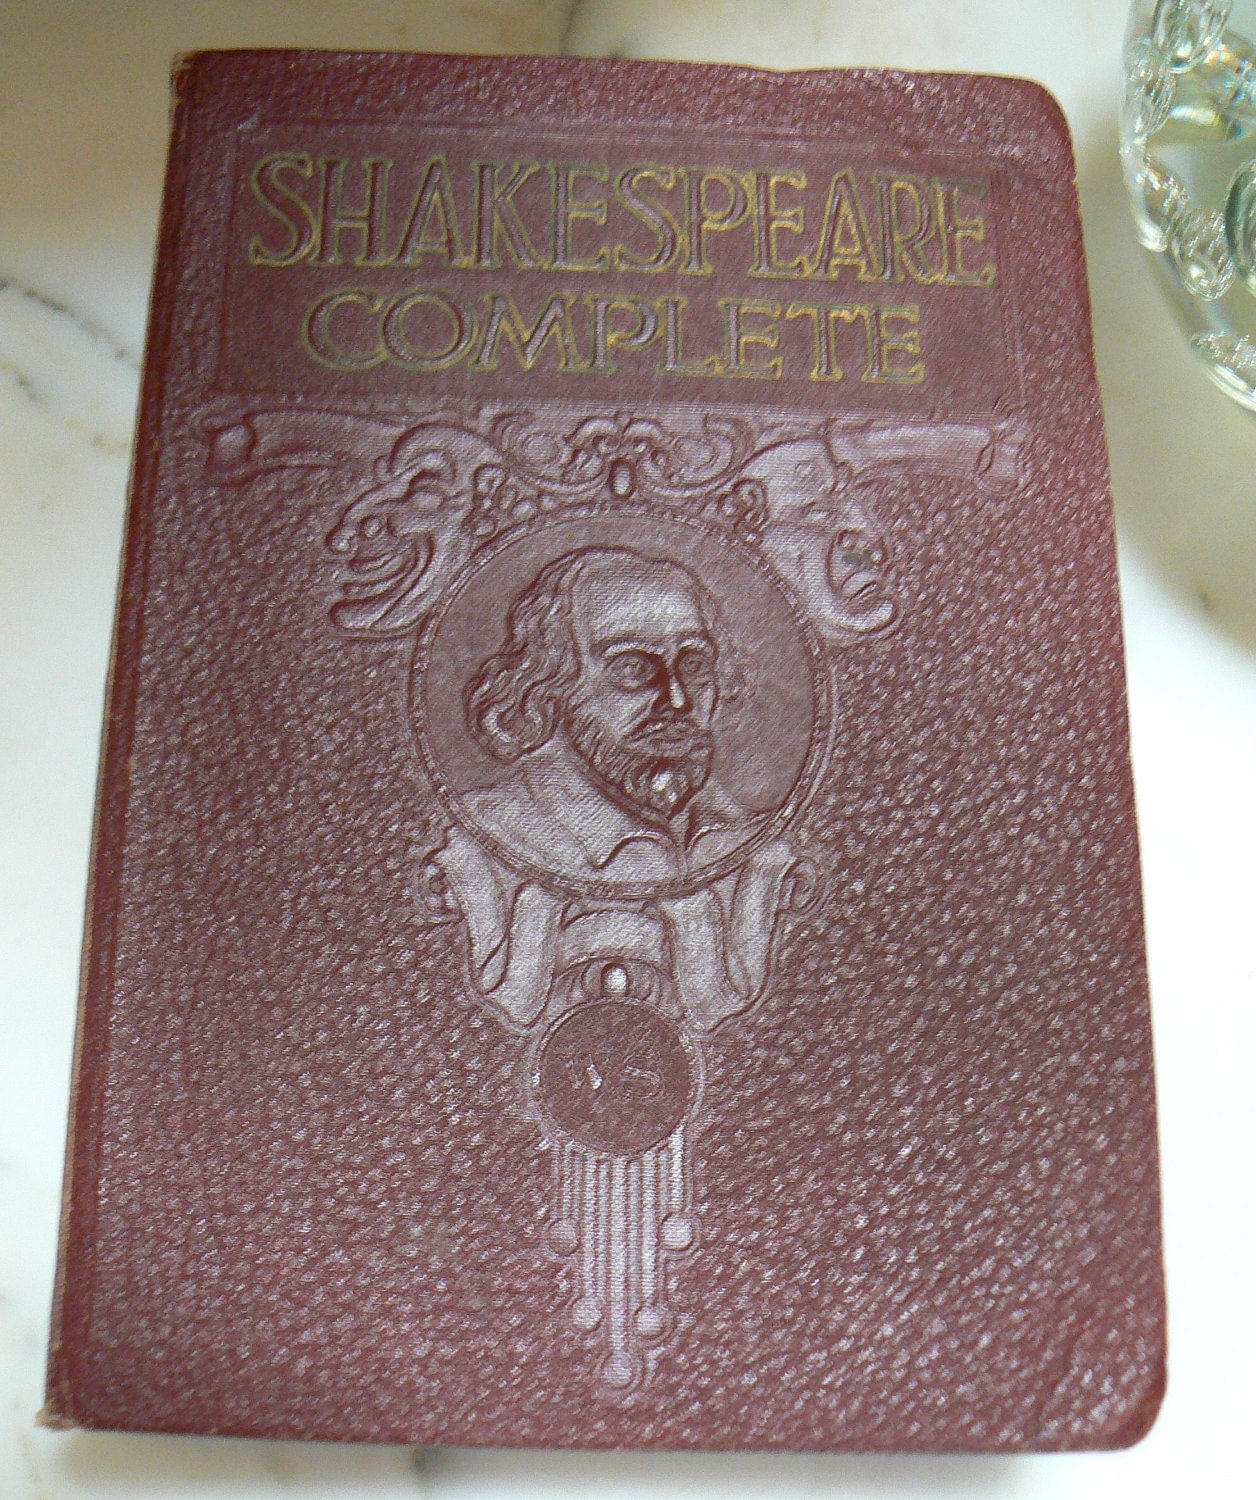 1930 Shakespeare Complete Works History Life and Notes Antique Book FREE SHIPPING